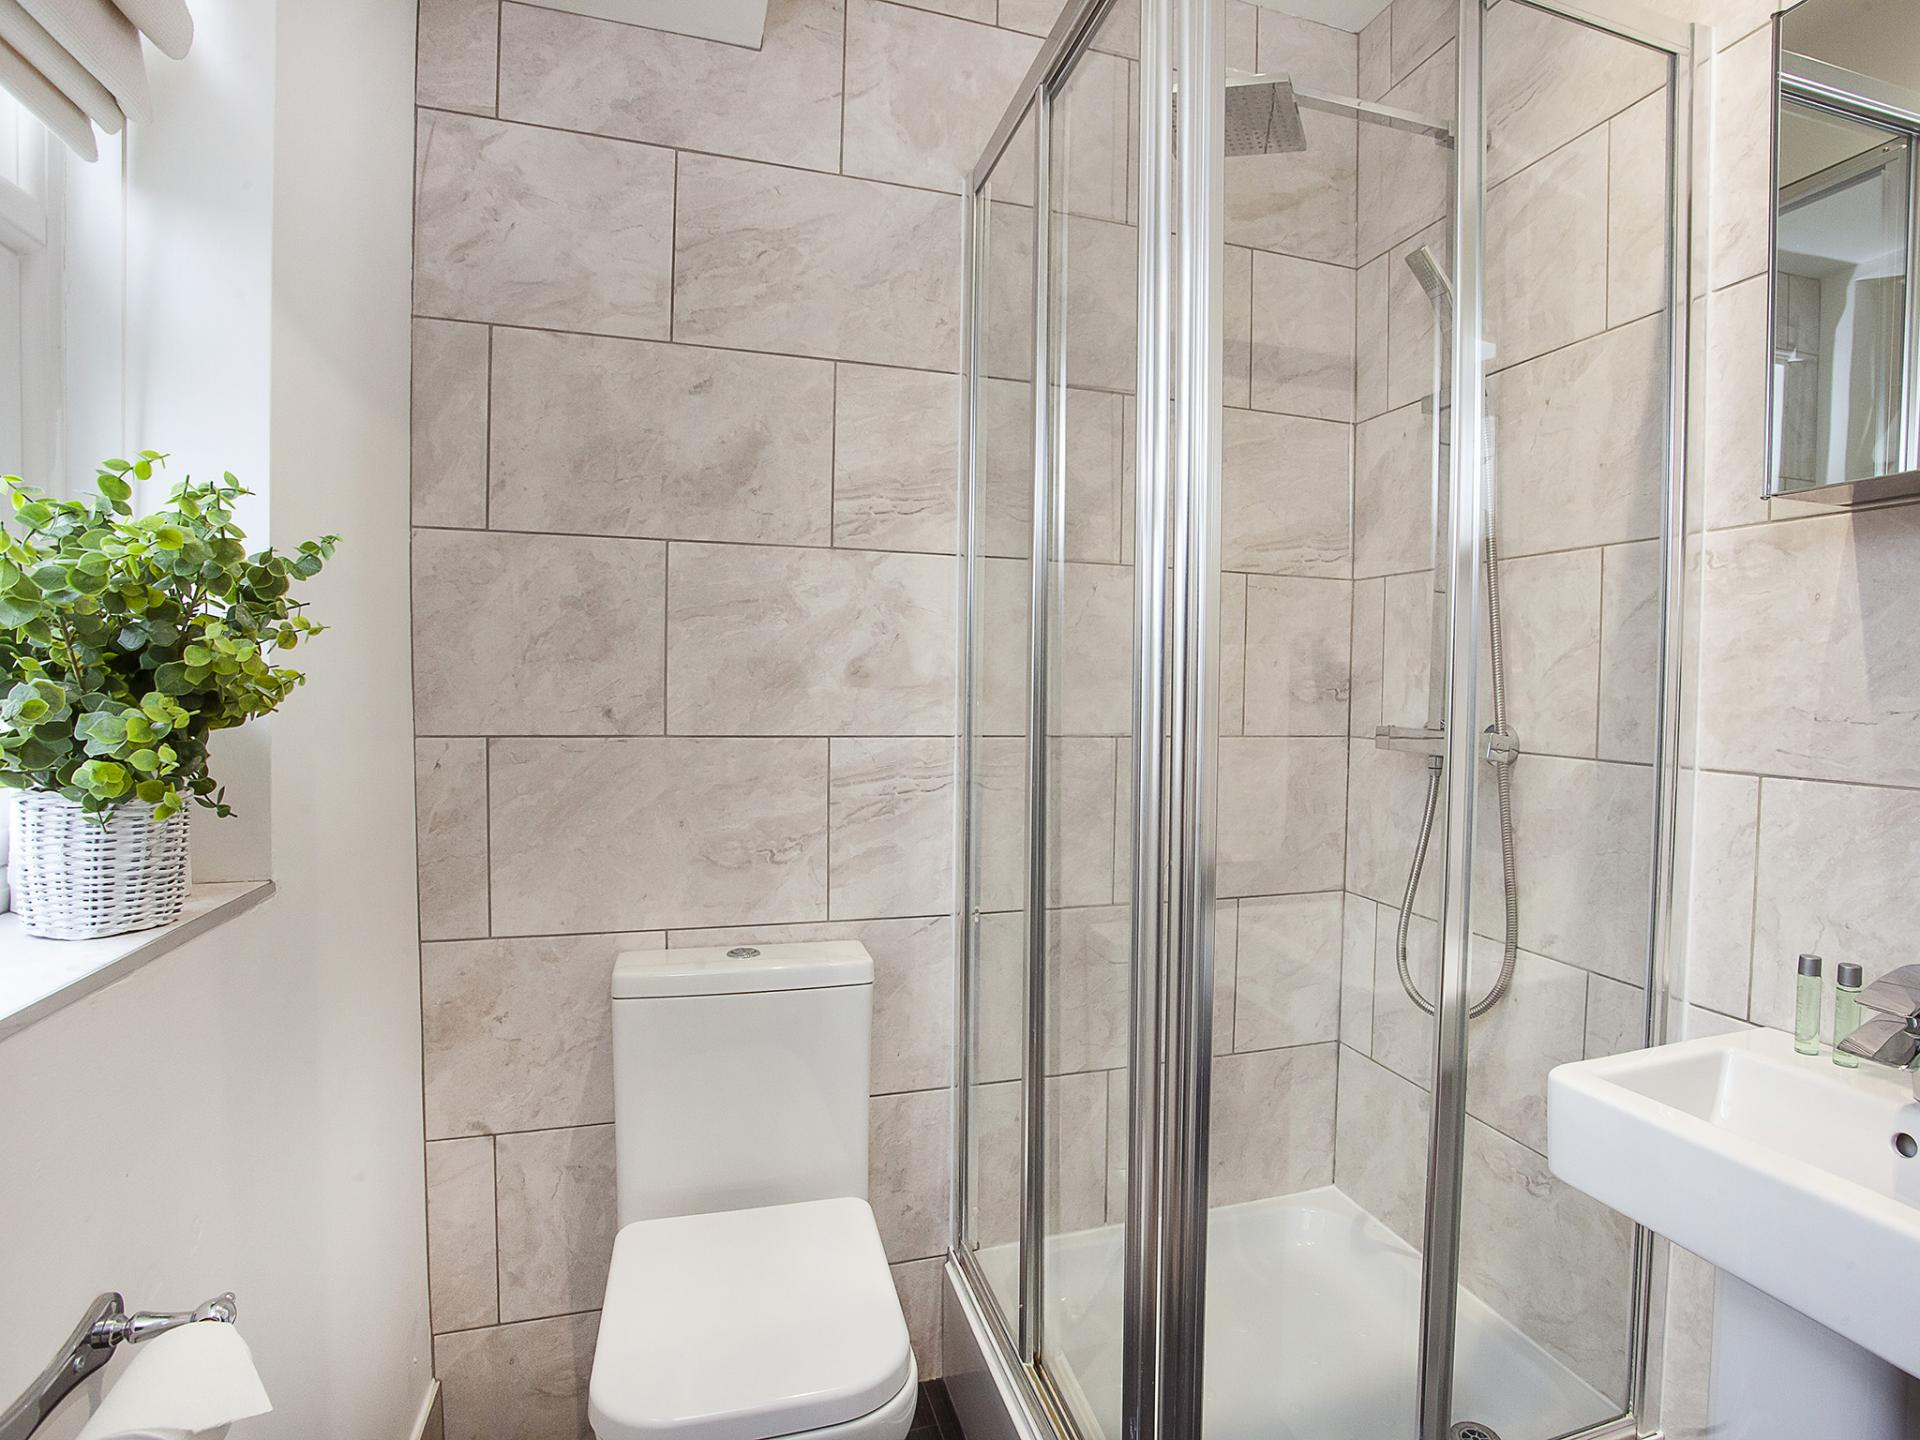 Shower room at The Station apartment, Centre, York - Citybase Apartments